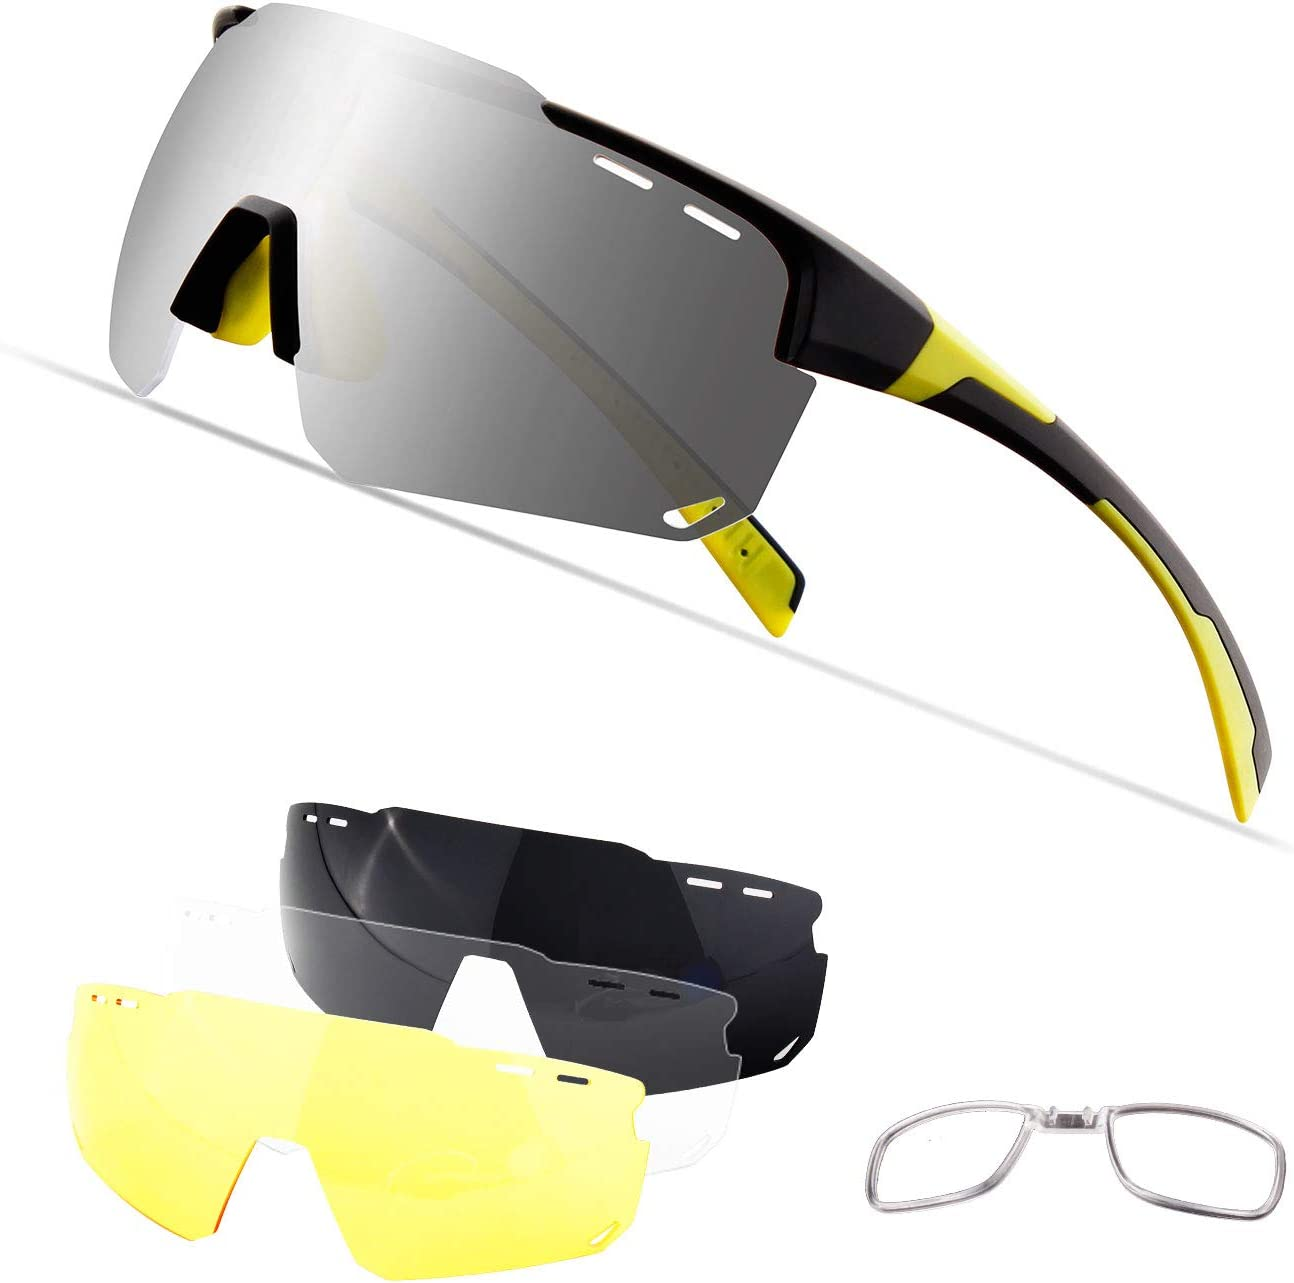 Xiyalai Cycling Sports Sunglasses,Polarized Glasses with 4 Interchangeable Lenses,Baseball Running Fishing Golf Driving Sunglasses